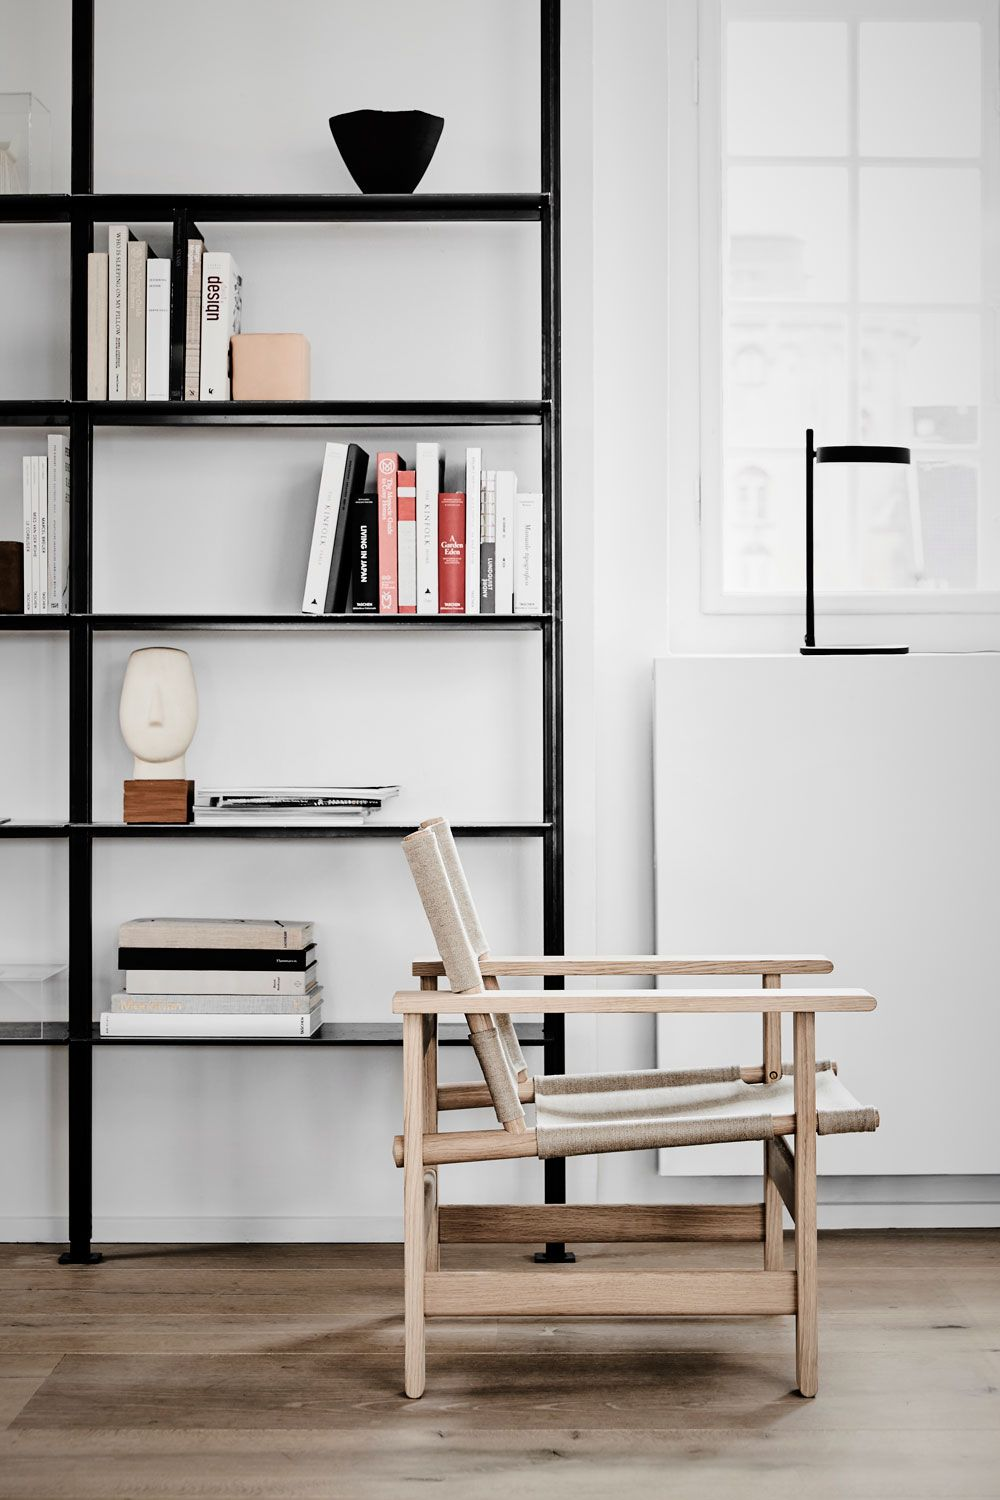 Seven New Scandinavian Designs That Made It To The Wish List In 2020 Fredericia Furniture Scandinavian Design Furniture Design Modern